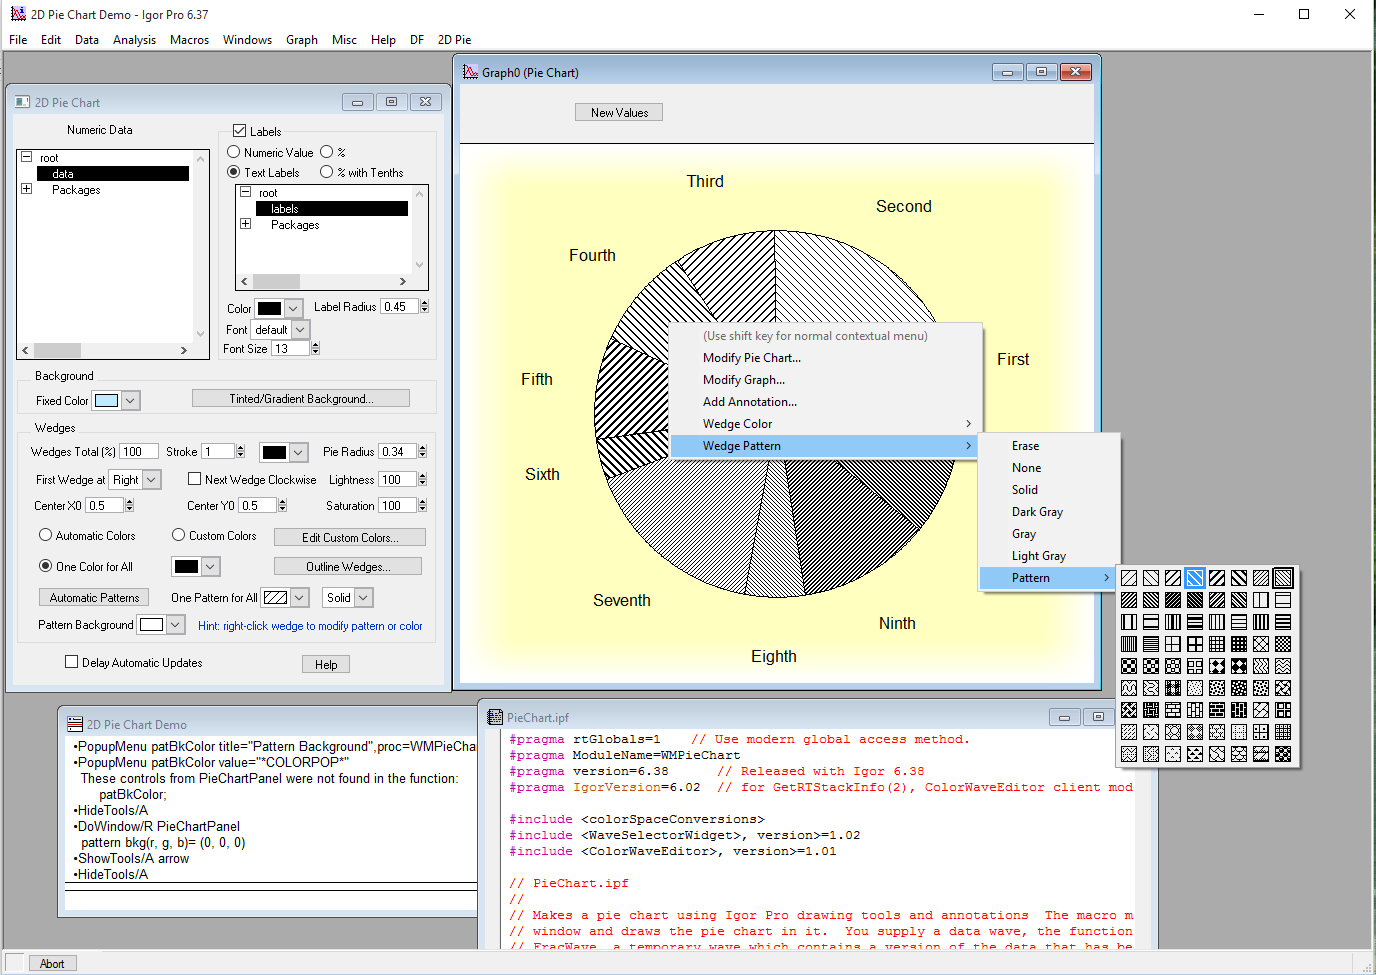 How To Save Pattern In 2d Pie Chart